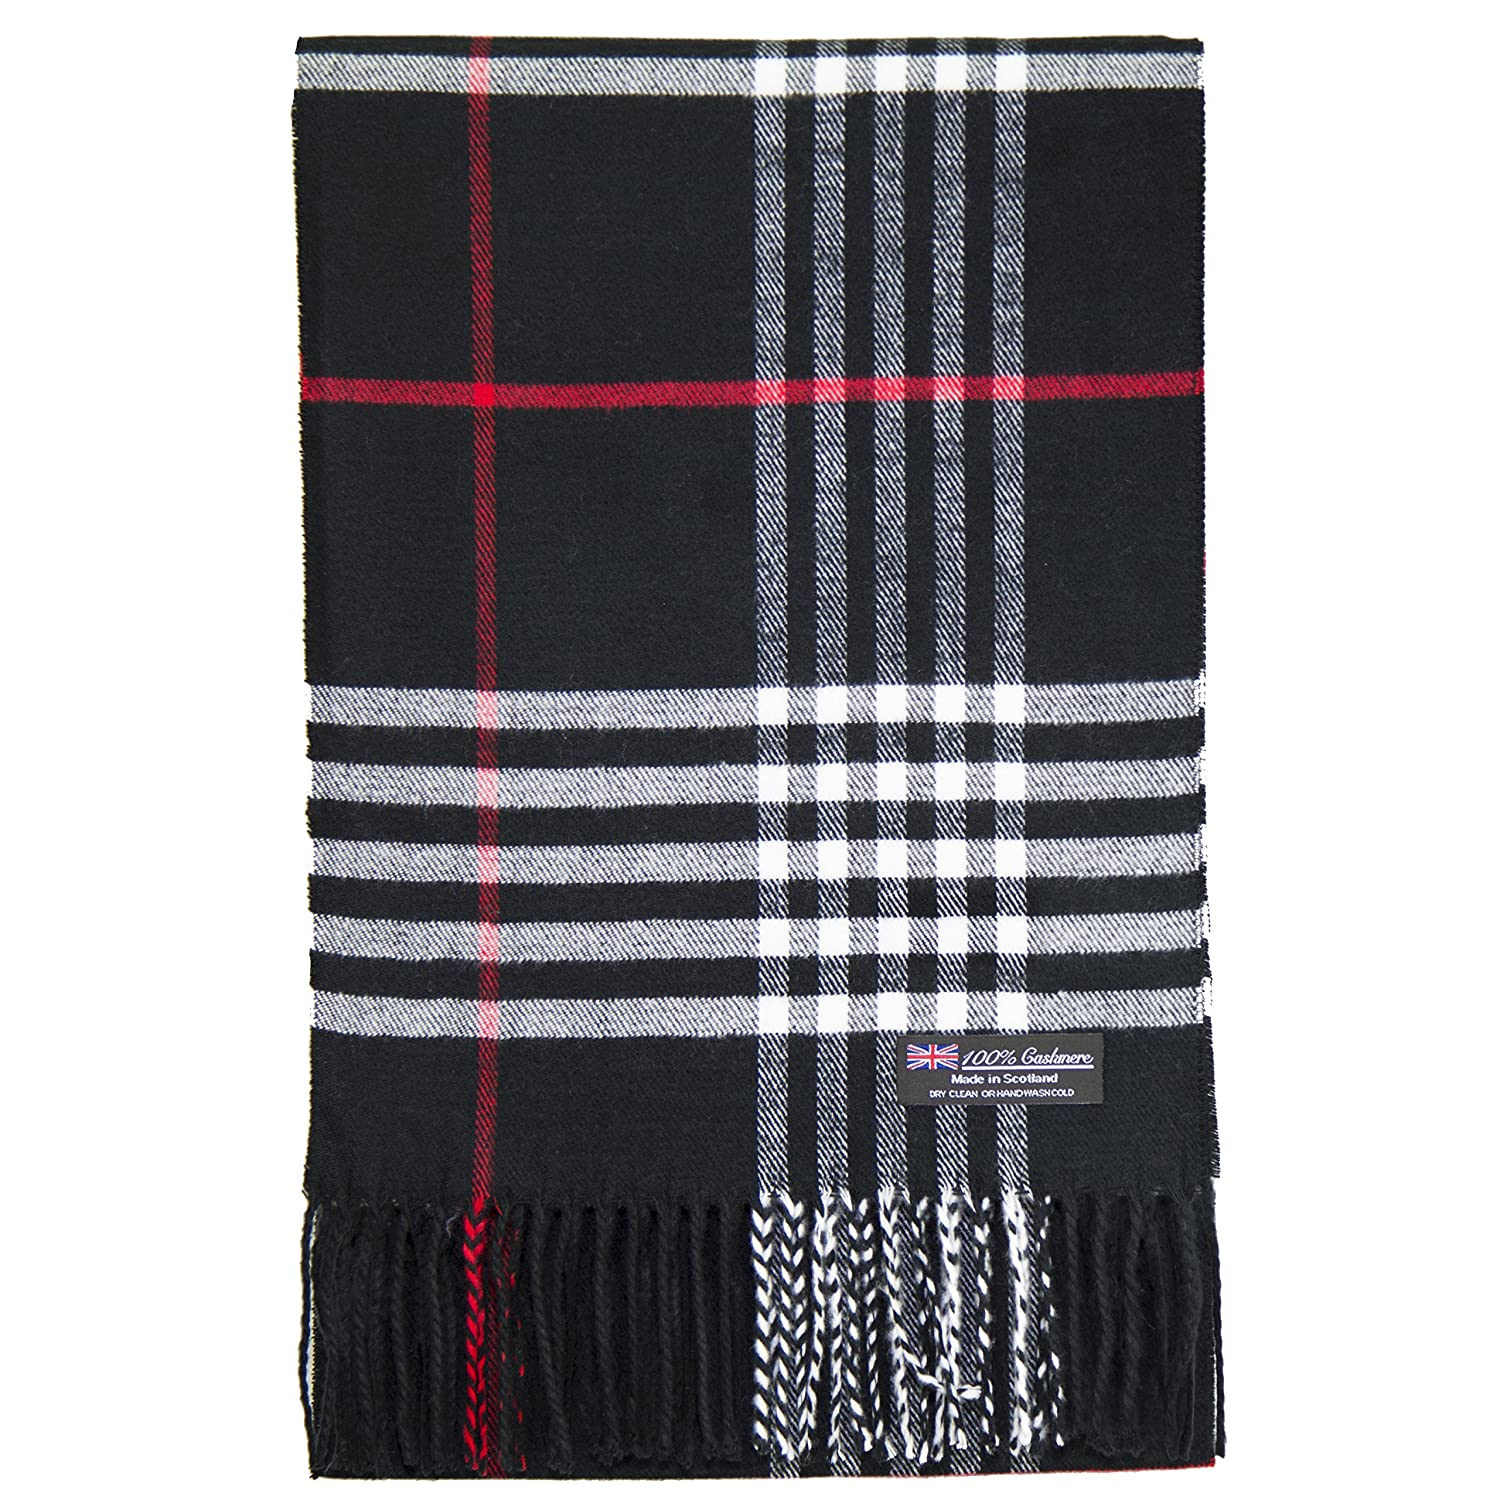 2 PLY 100/% Cashmere Scarf Tartan OS Big Check Plaid Scotland Wool Wrap Muffler